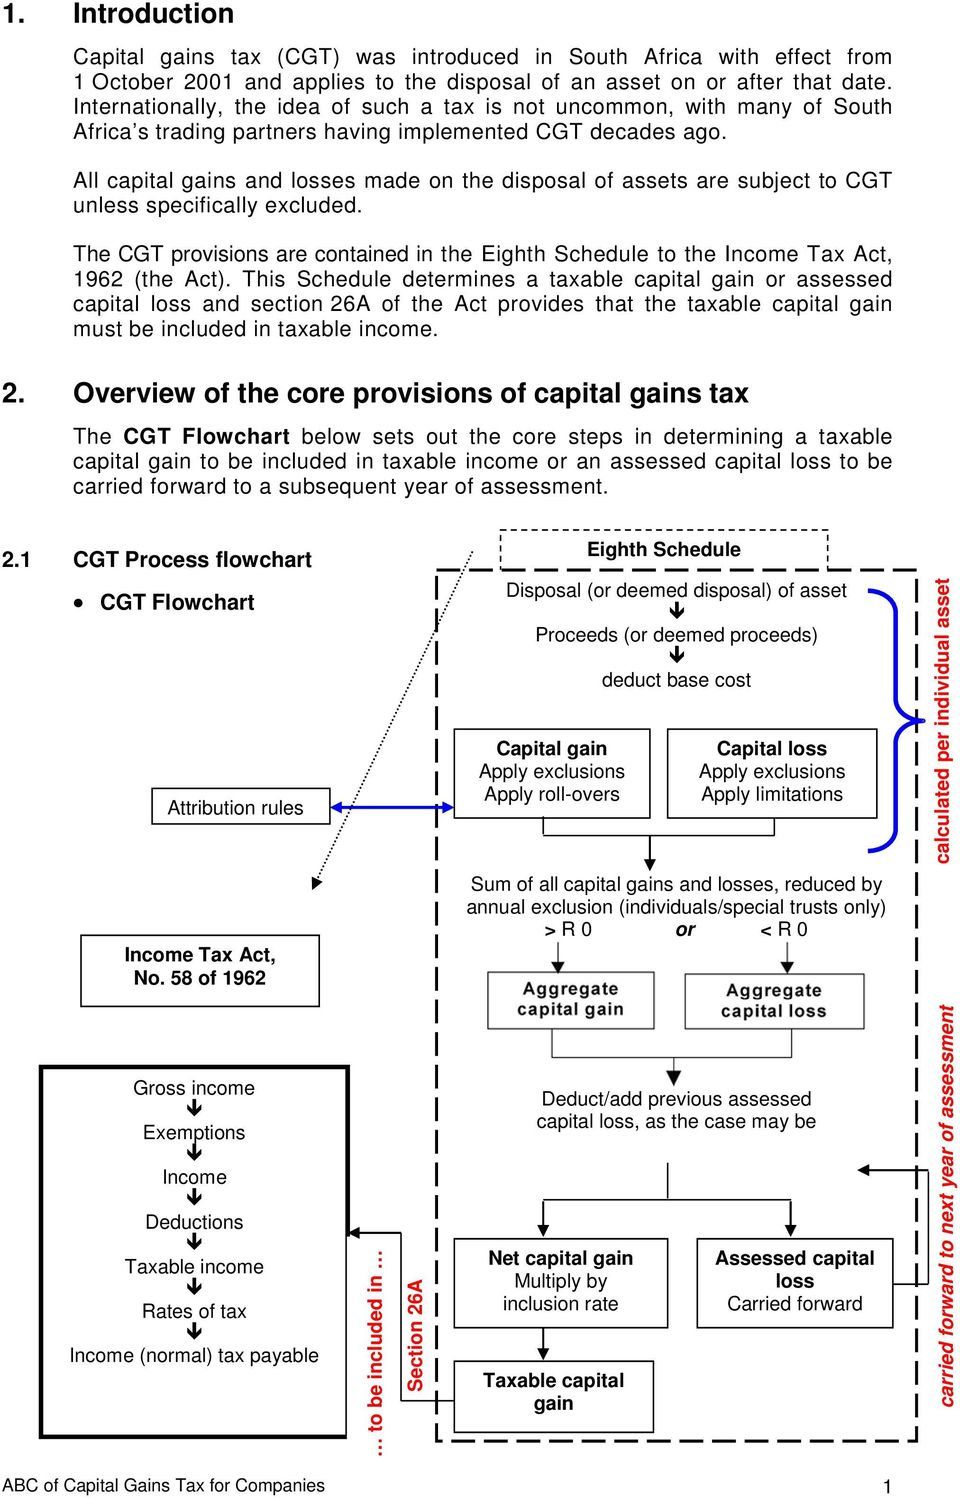 All capital gains and losses made on the disposal of assets are subject to CGT unless specifically excluded.